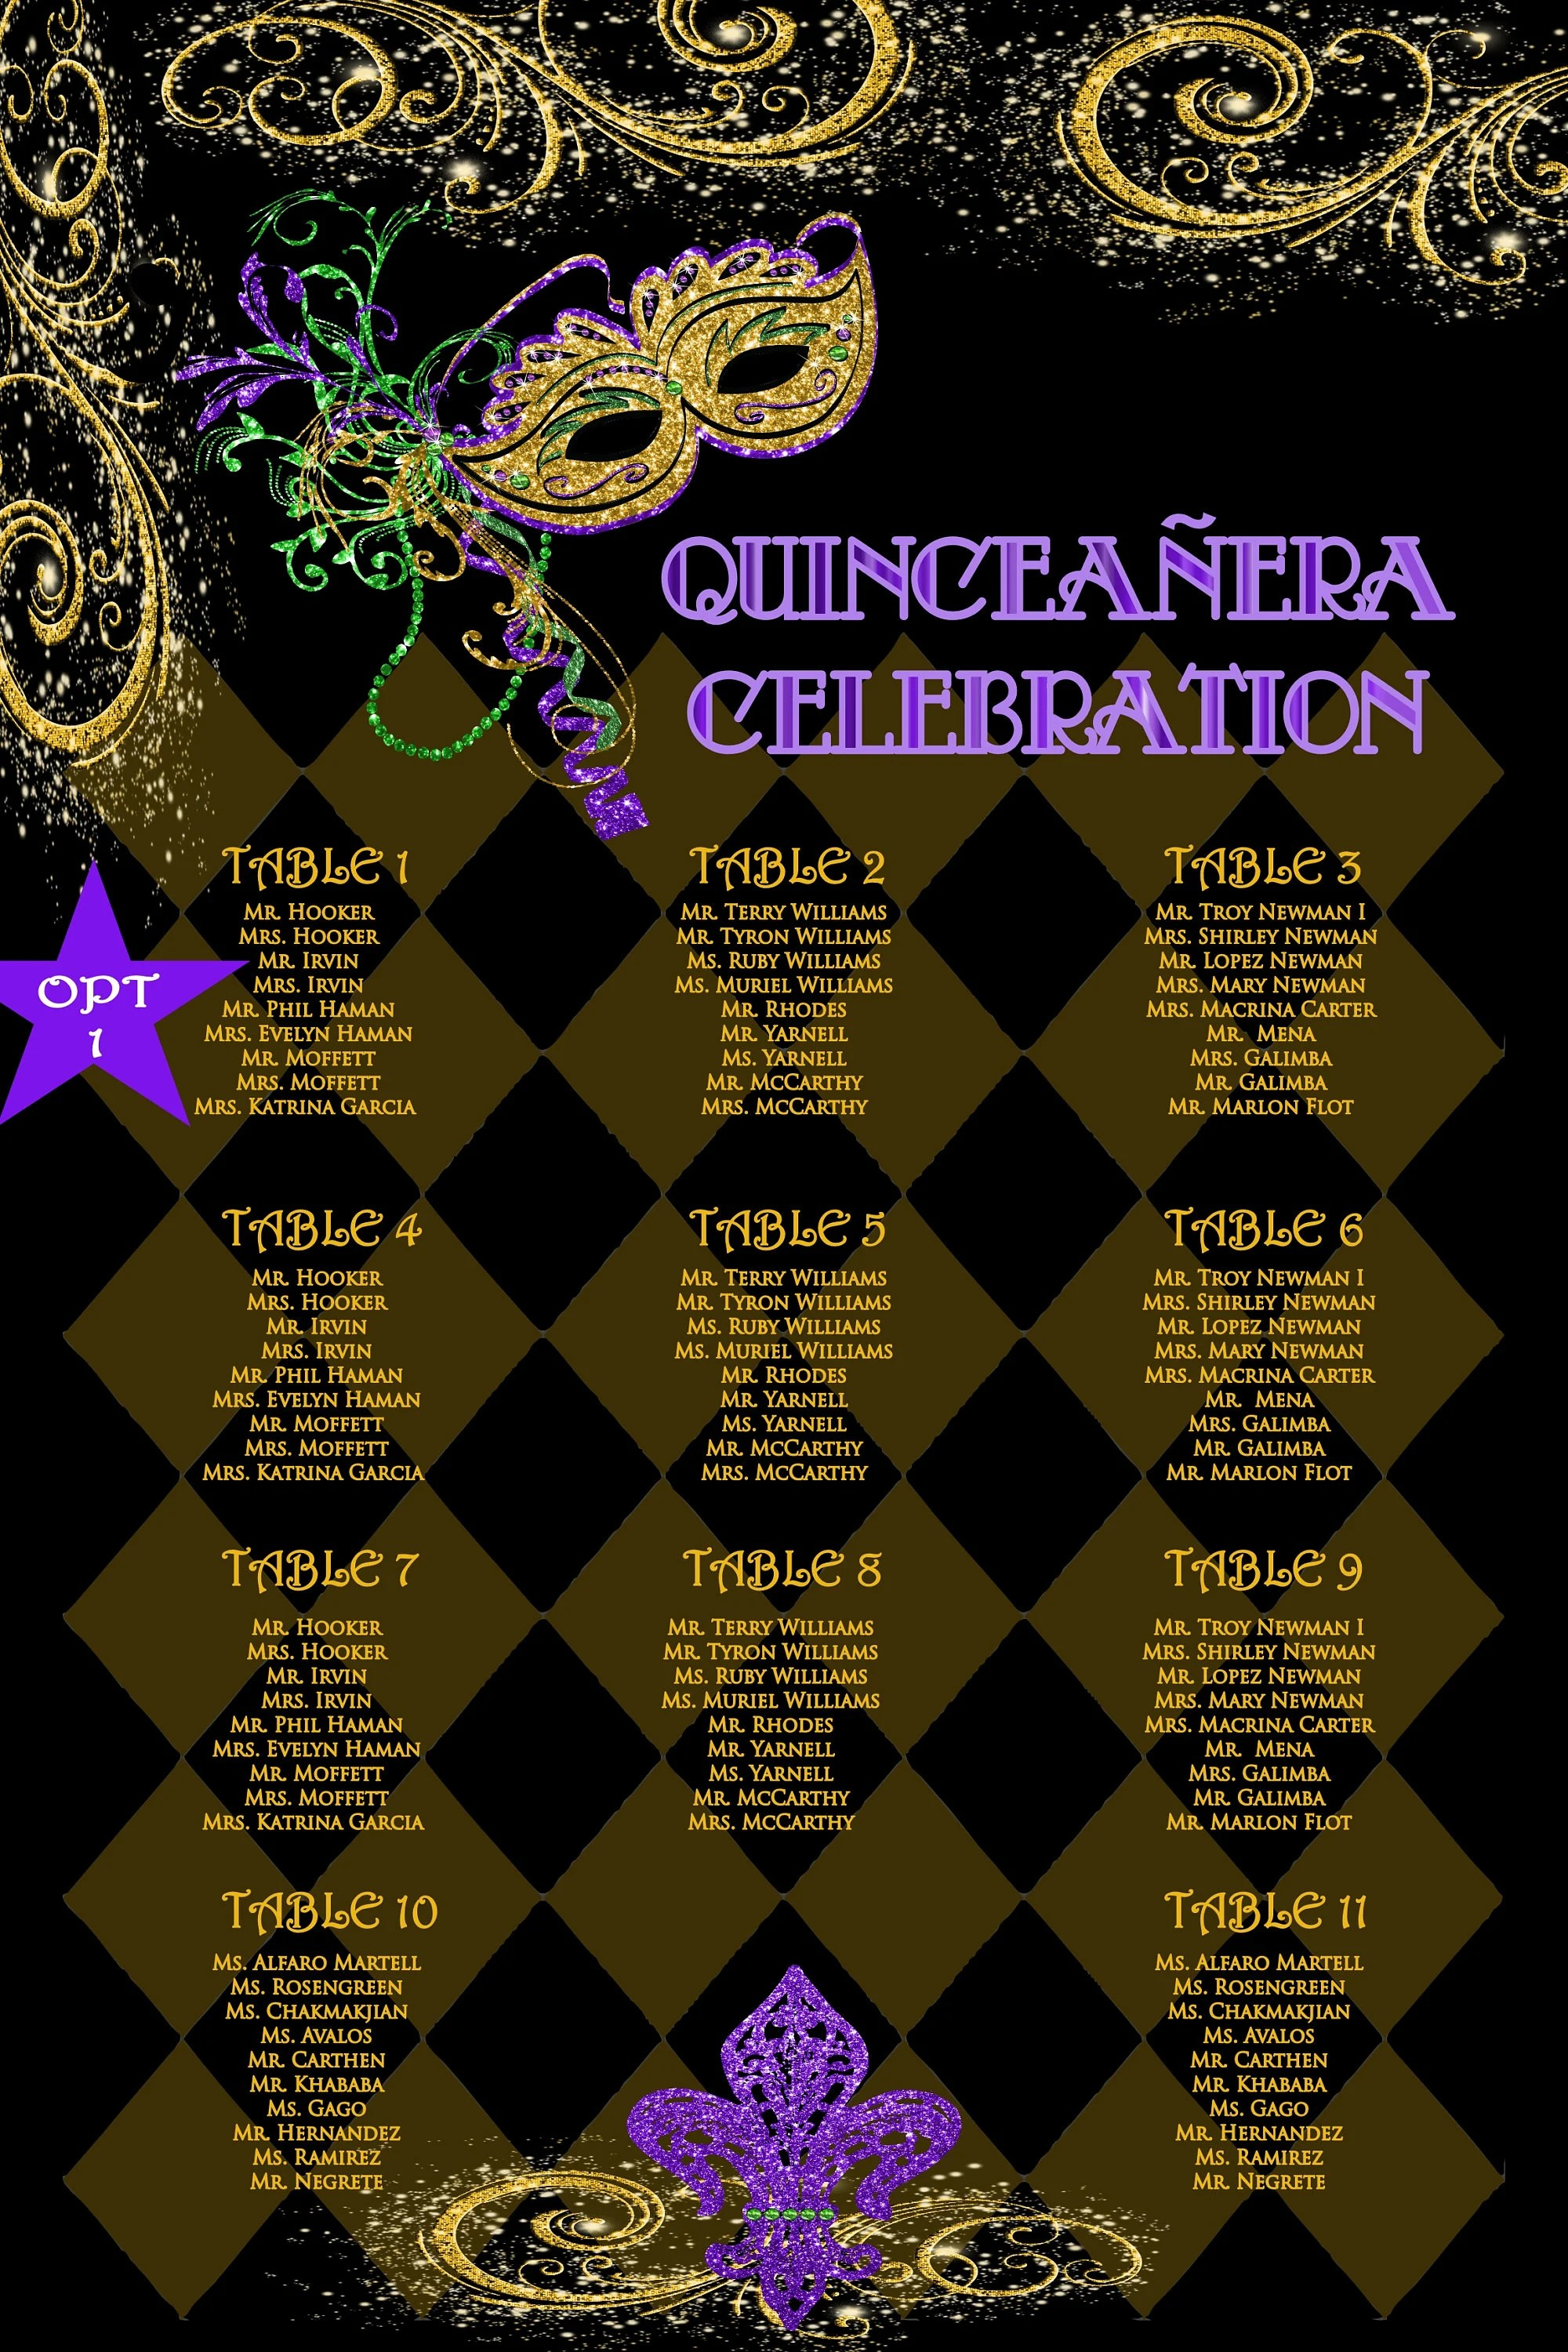 Quinceanera seating chart wedding seating chart mardi gras Etsy